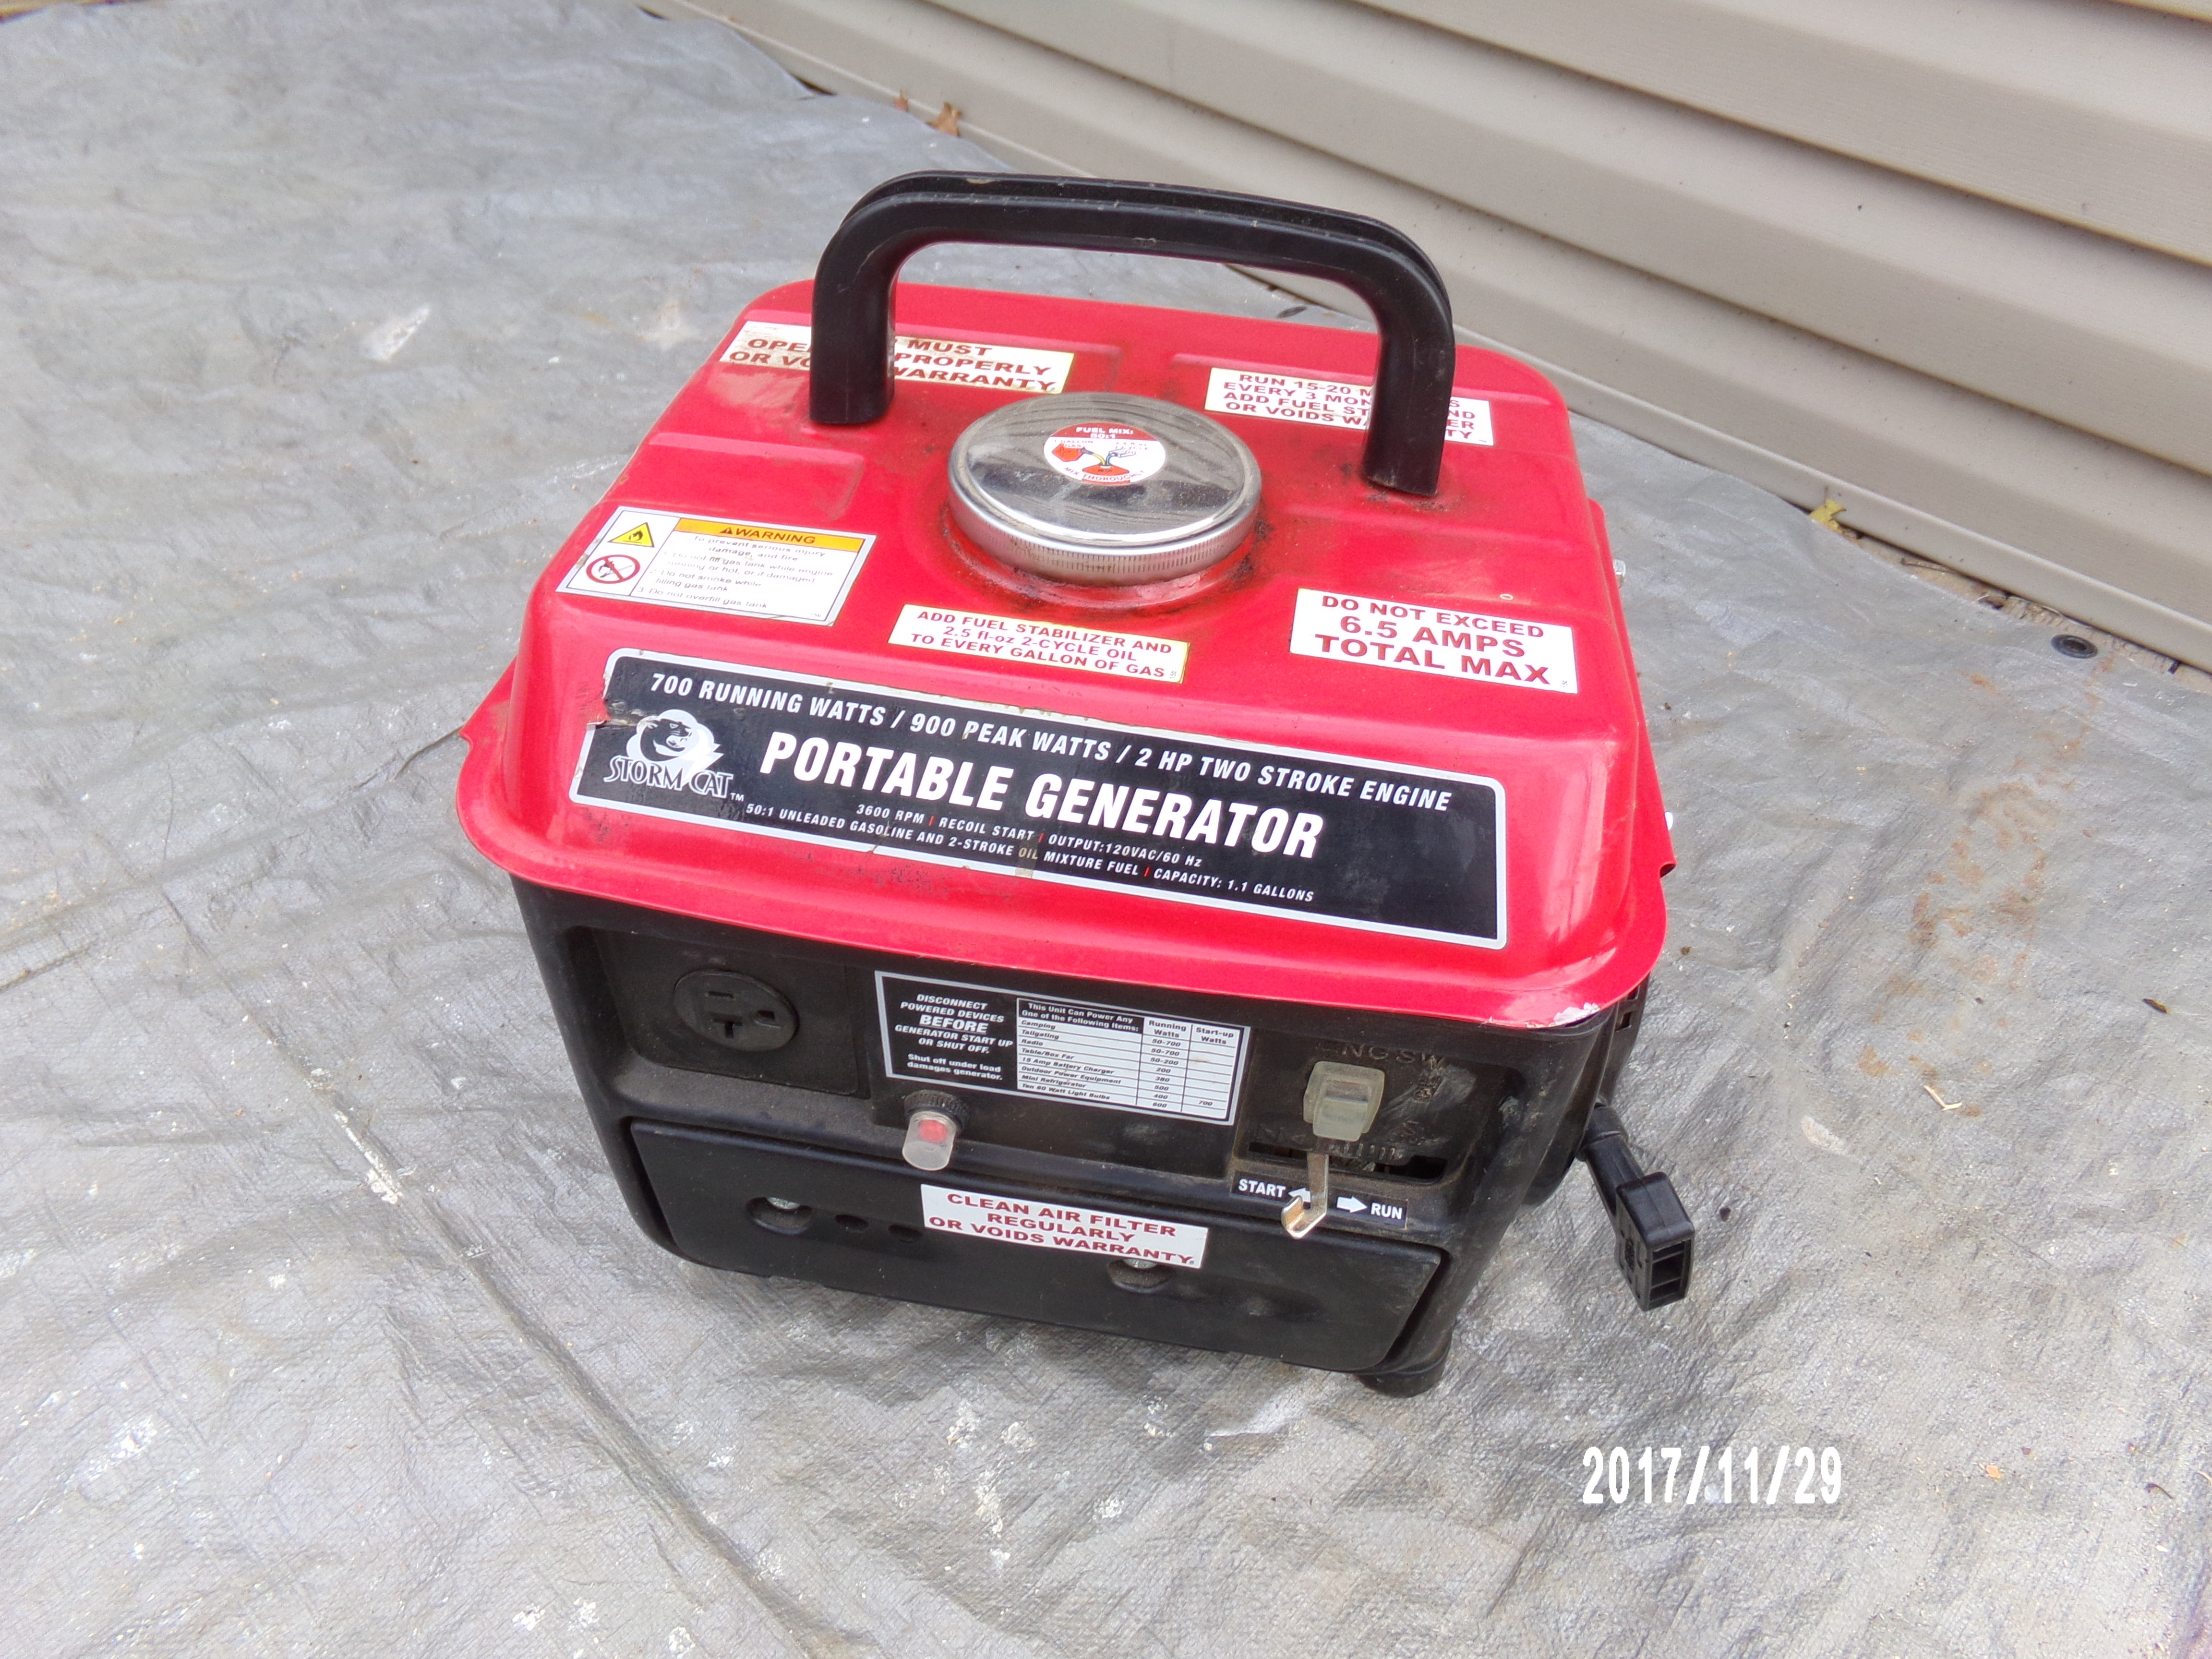 PORTABLE GENERATOR (HARBOR FREIGHT)